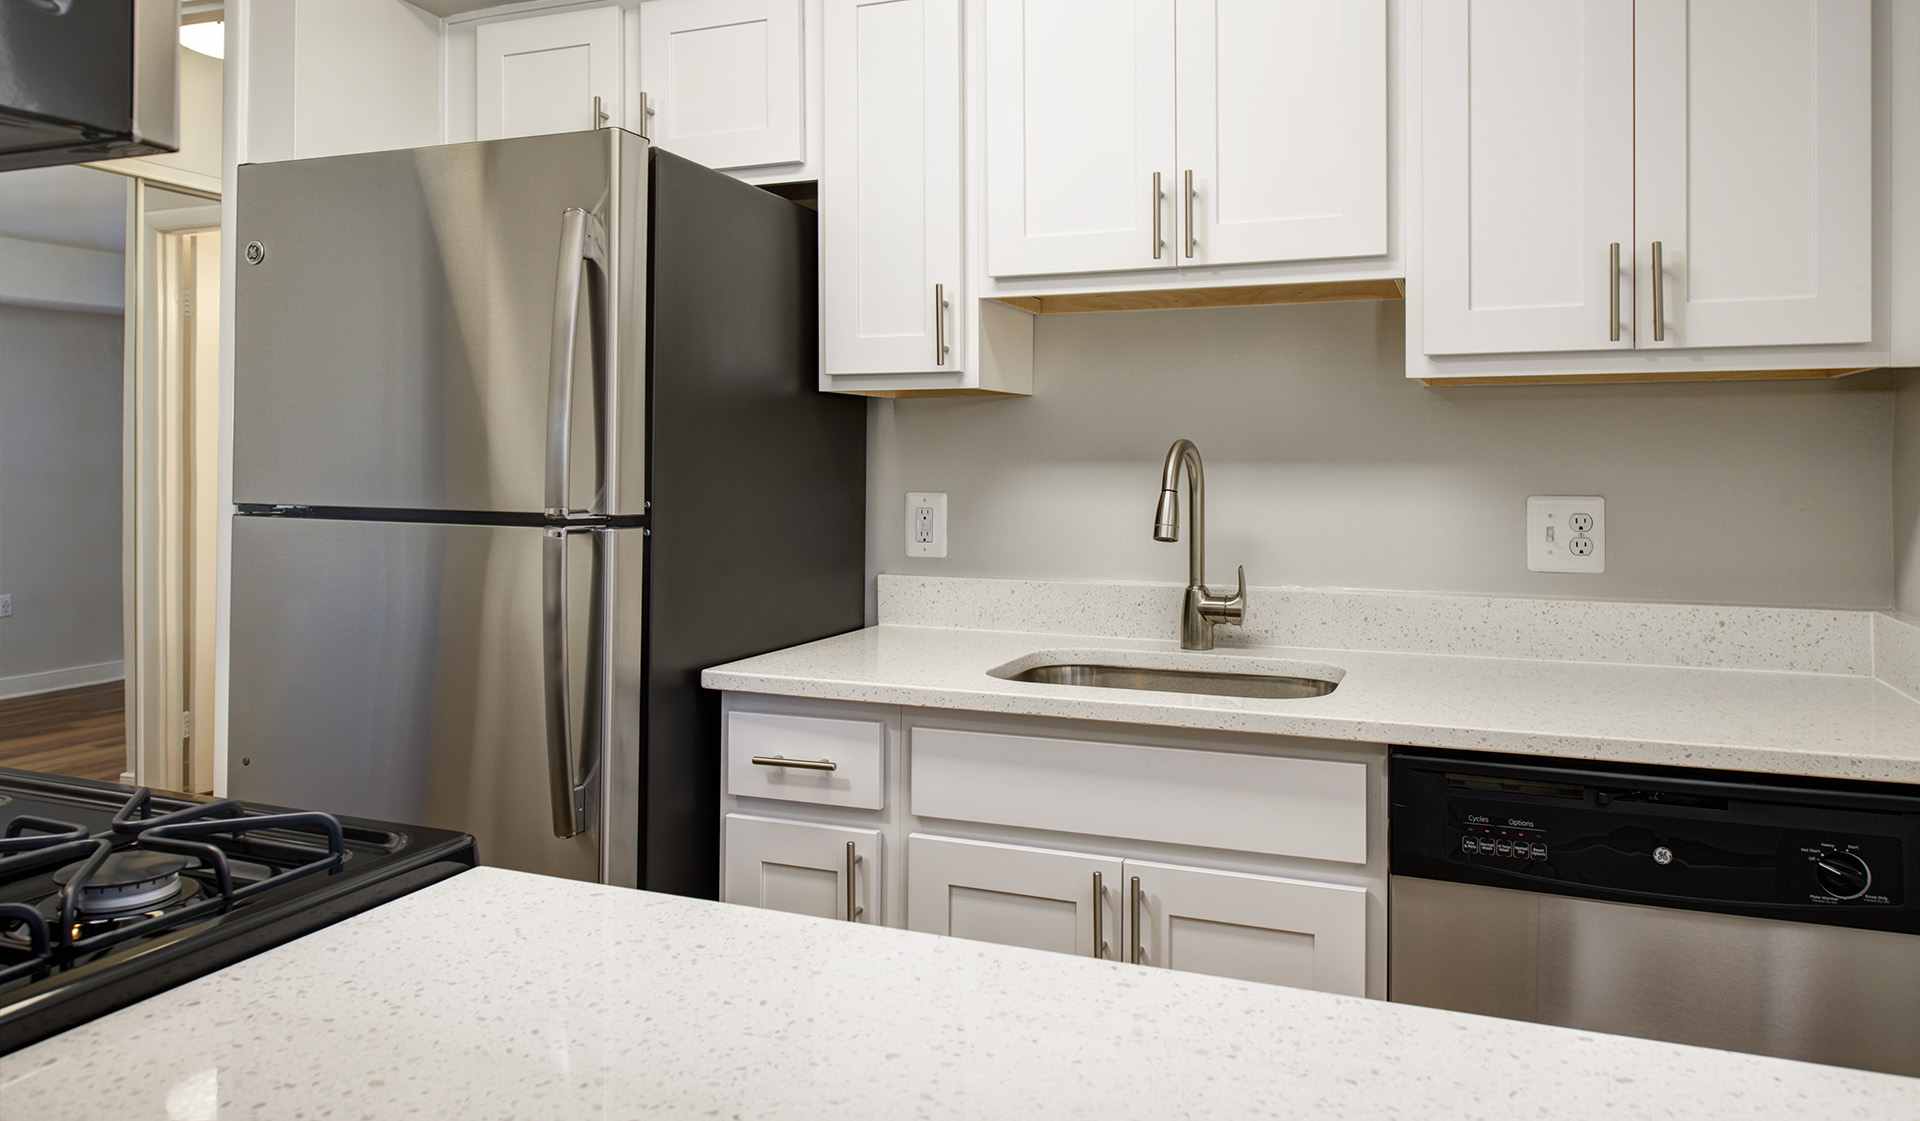 Foxchase Aparments | Alexandria, VA | Kitchen